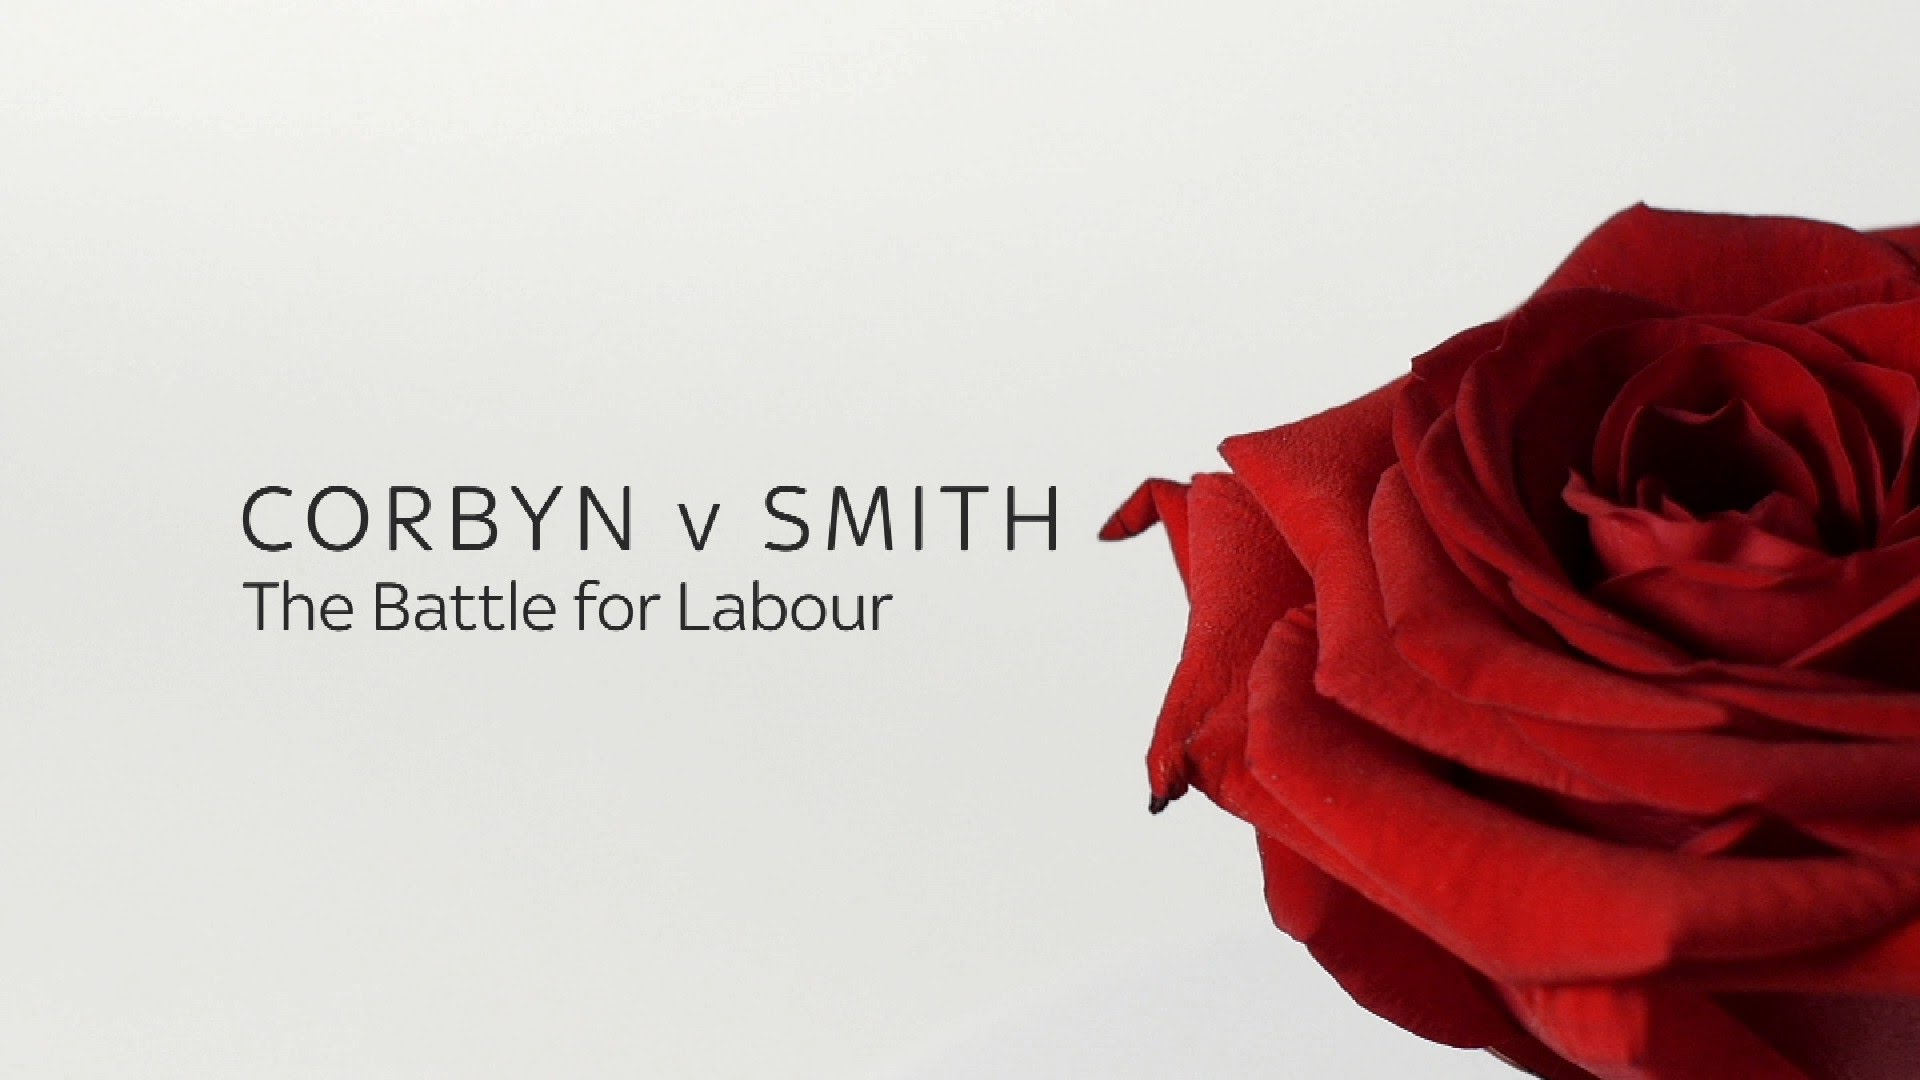 Corbyn v Smith - The Battle For Labour 6